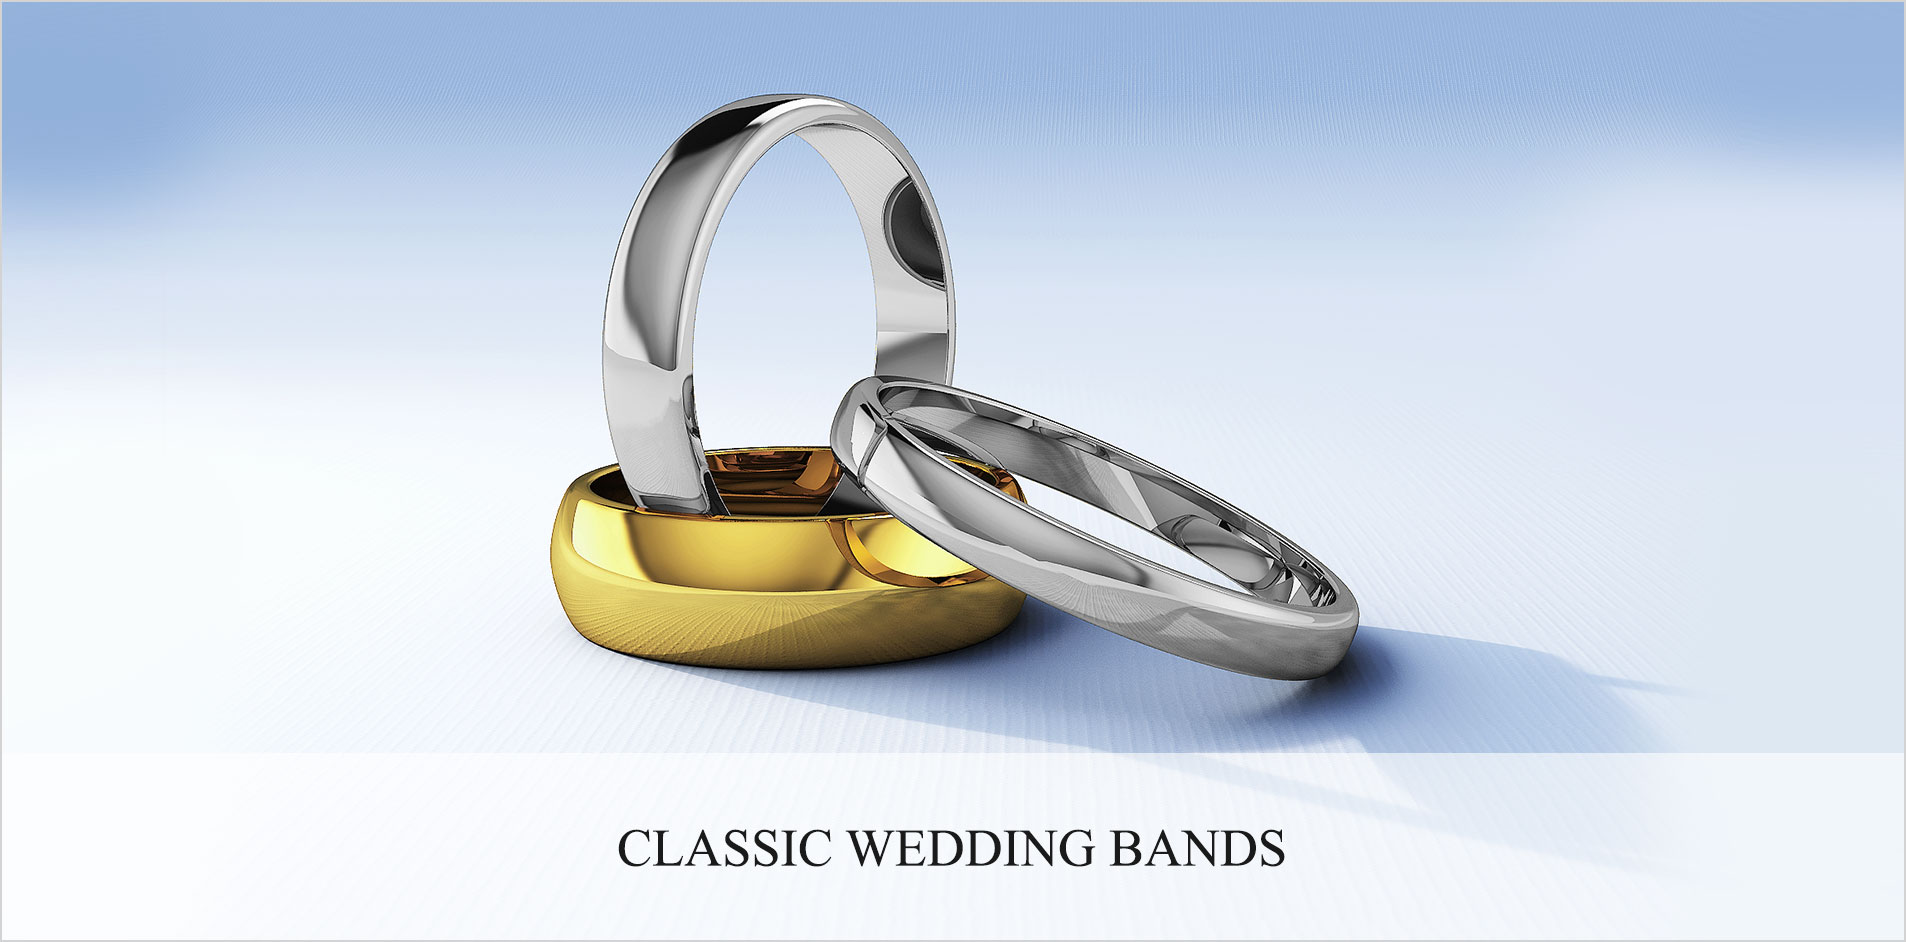 Classic Wedding Bands